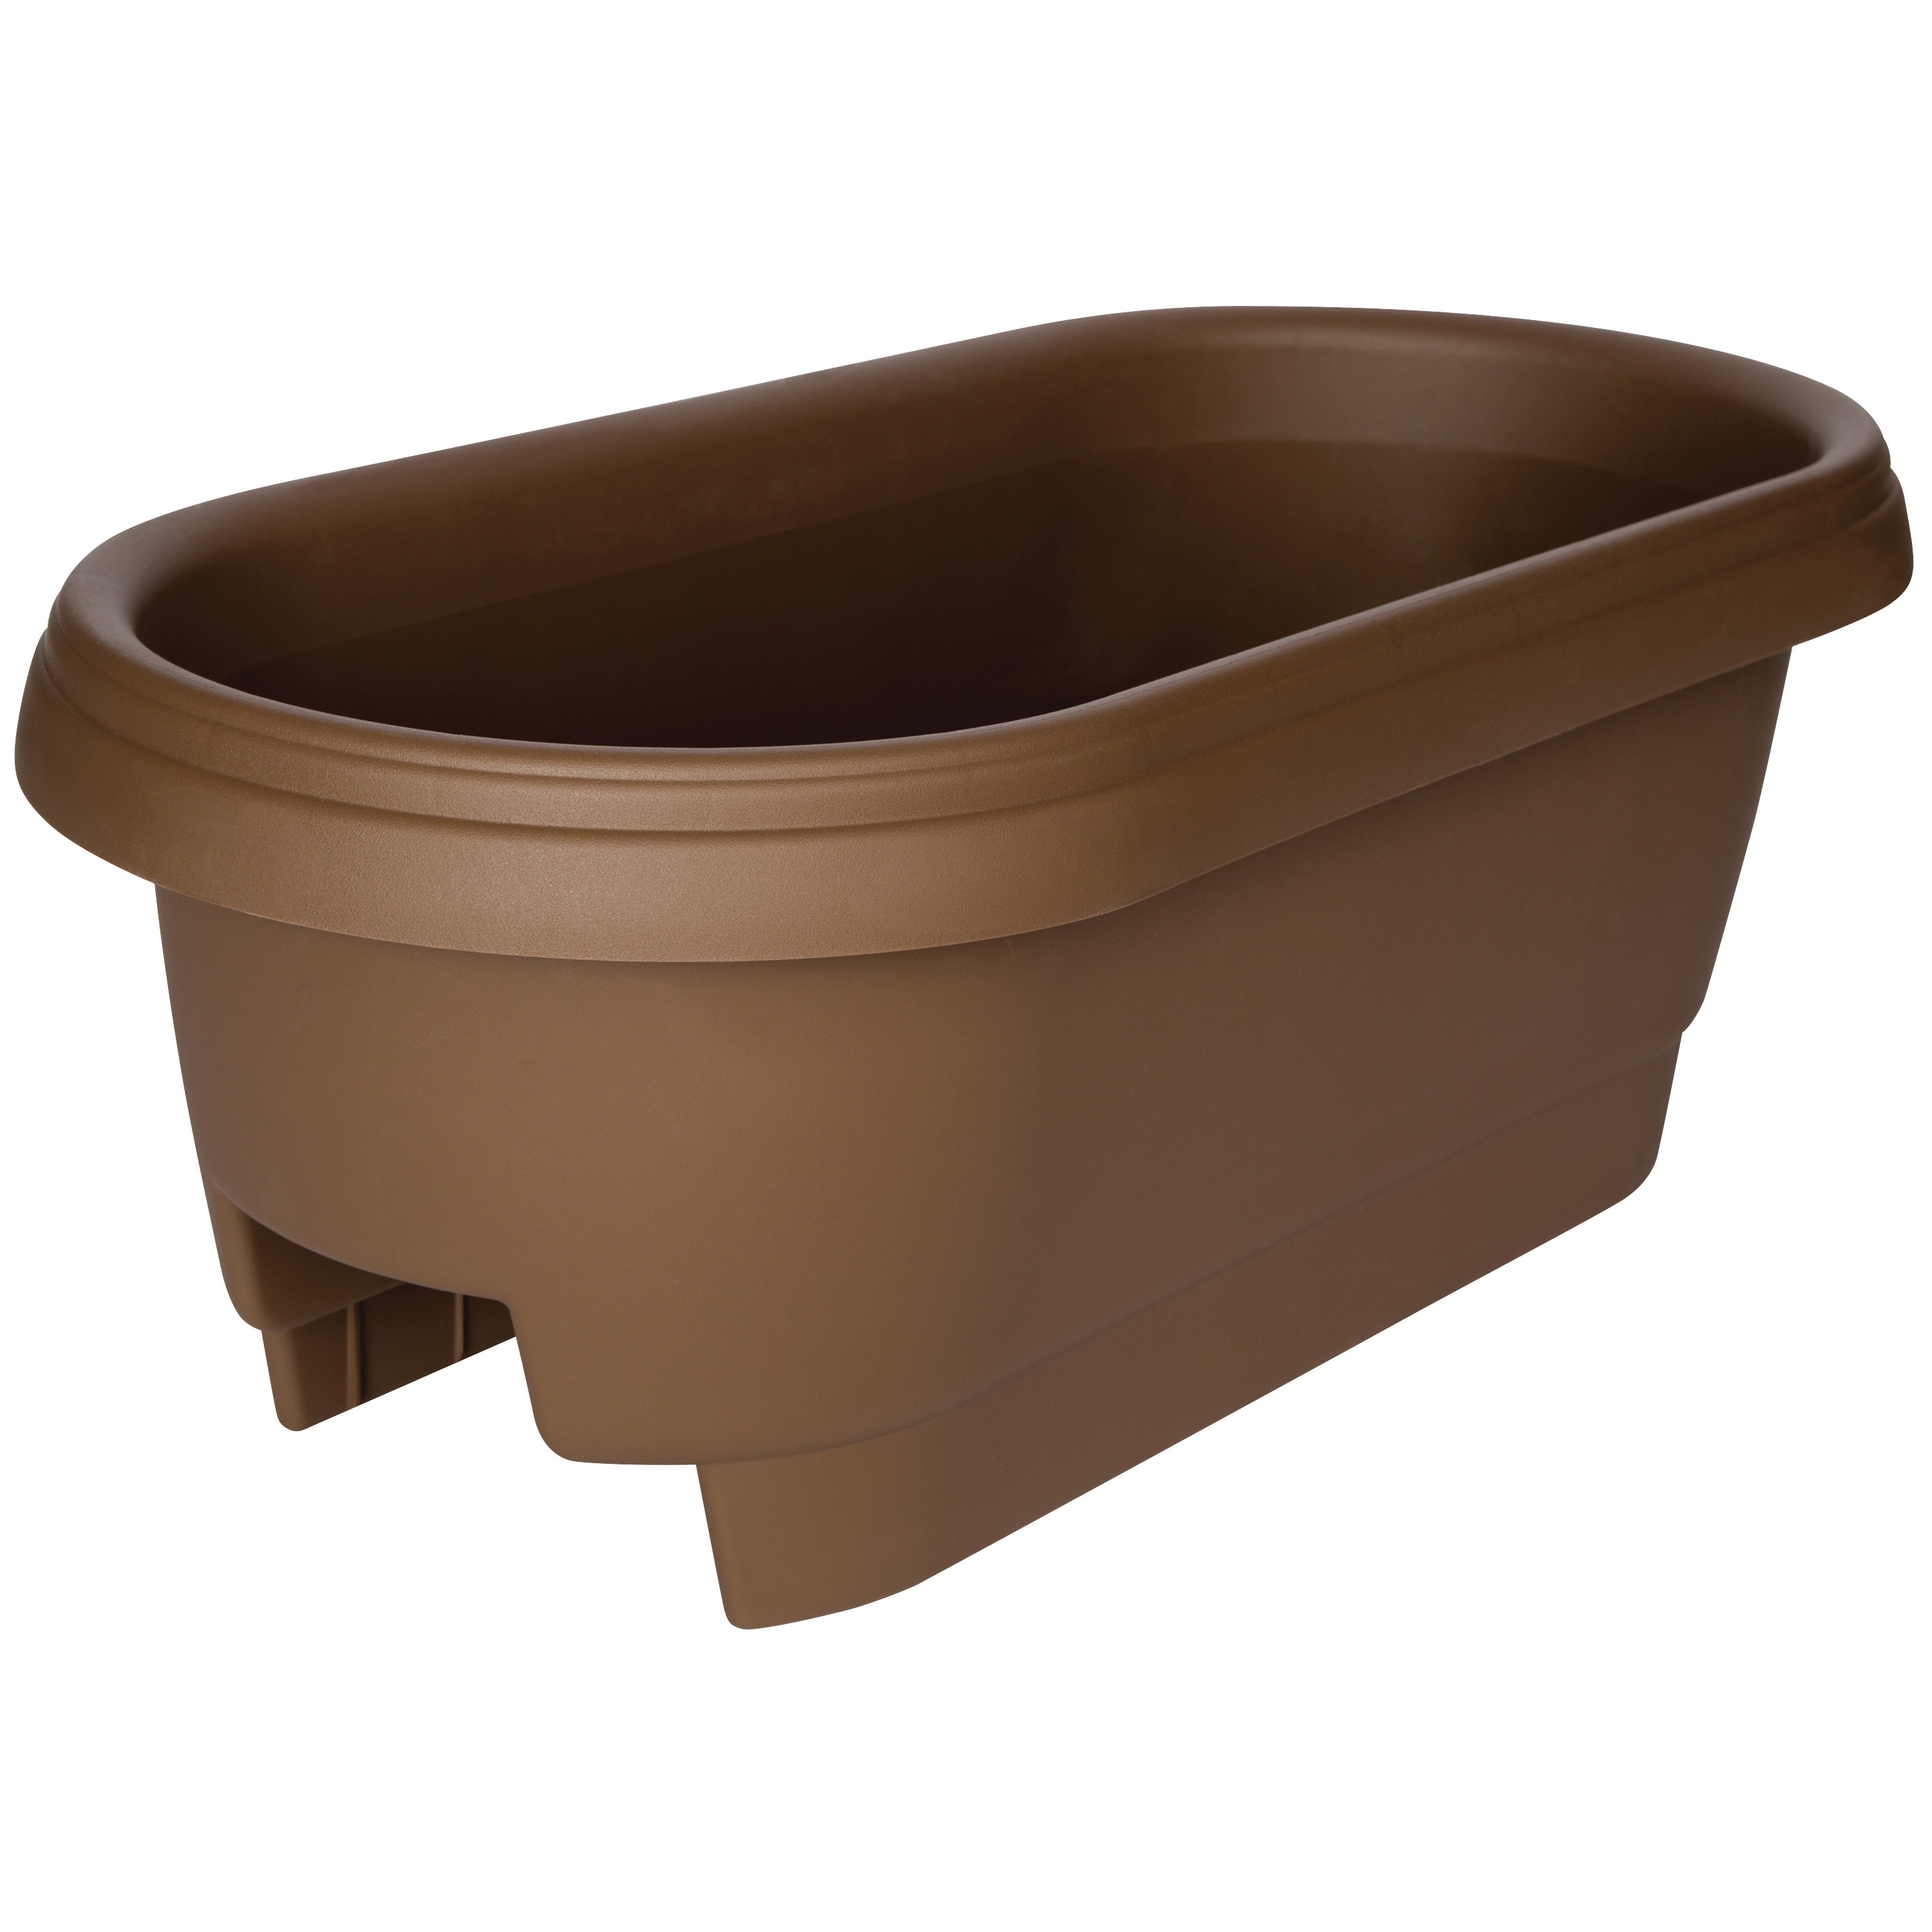 Picture of Bloem 477245-1001 Classic Deck Rail Box Planter, 11.9 in W, 23.9 in D, Plastic, Chocolate, Matte